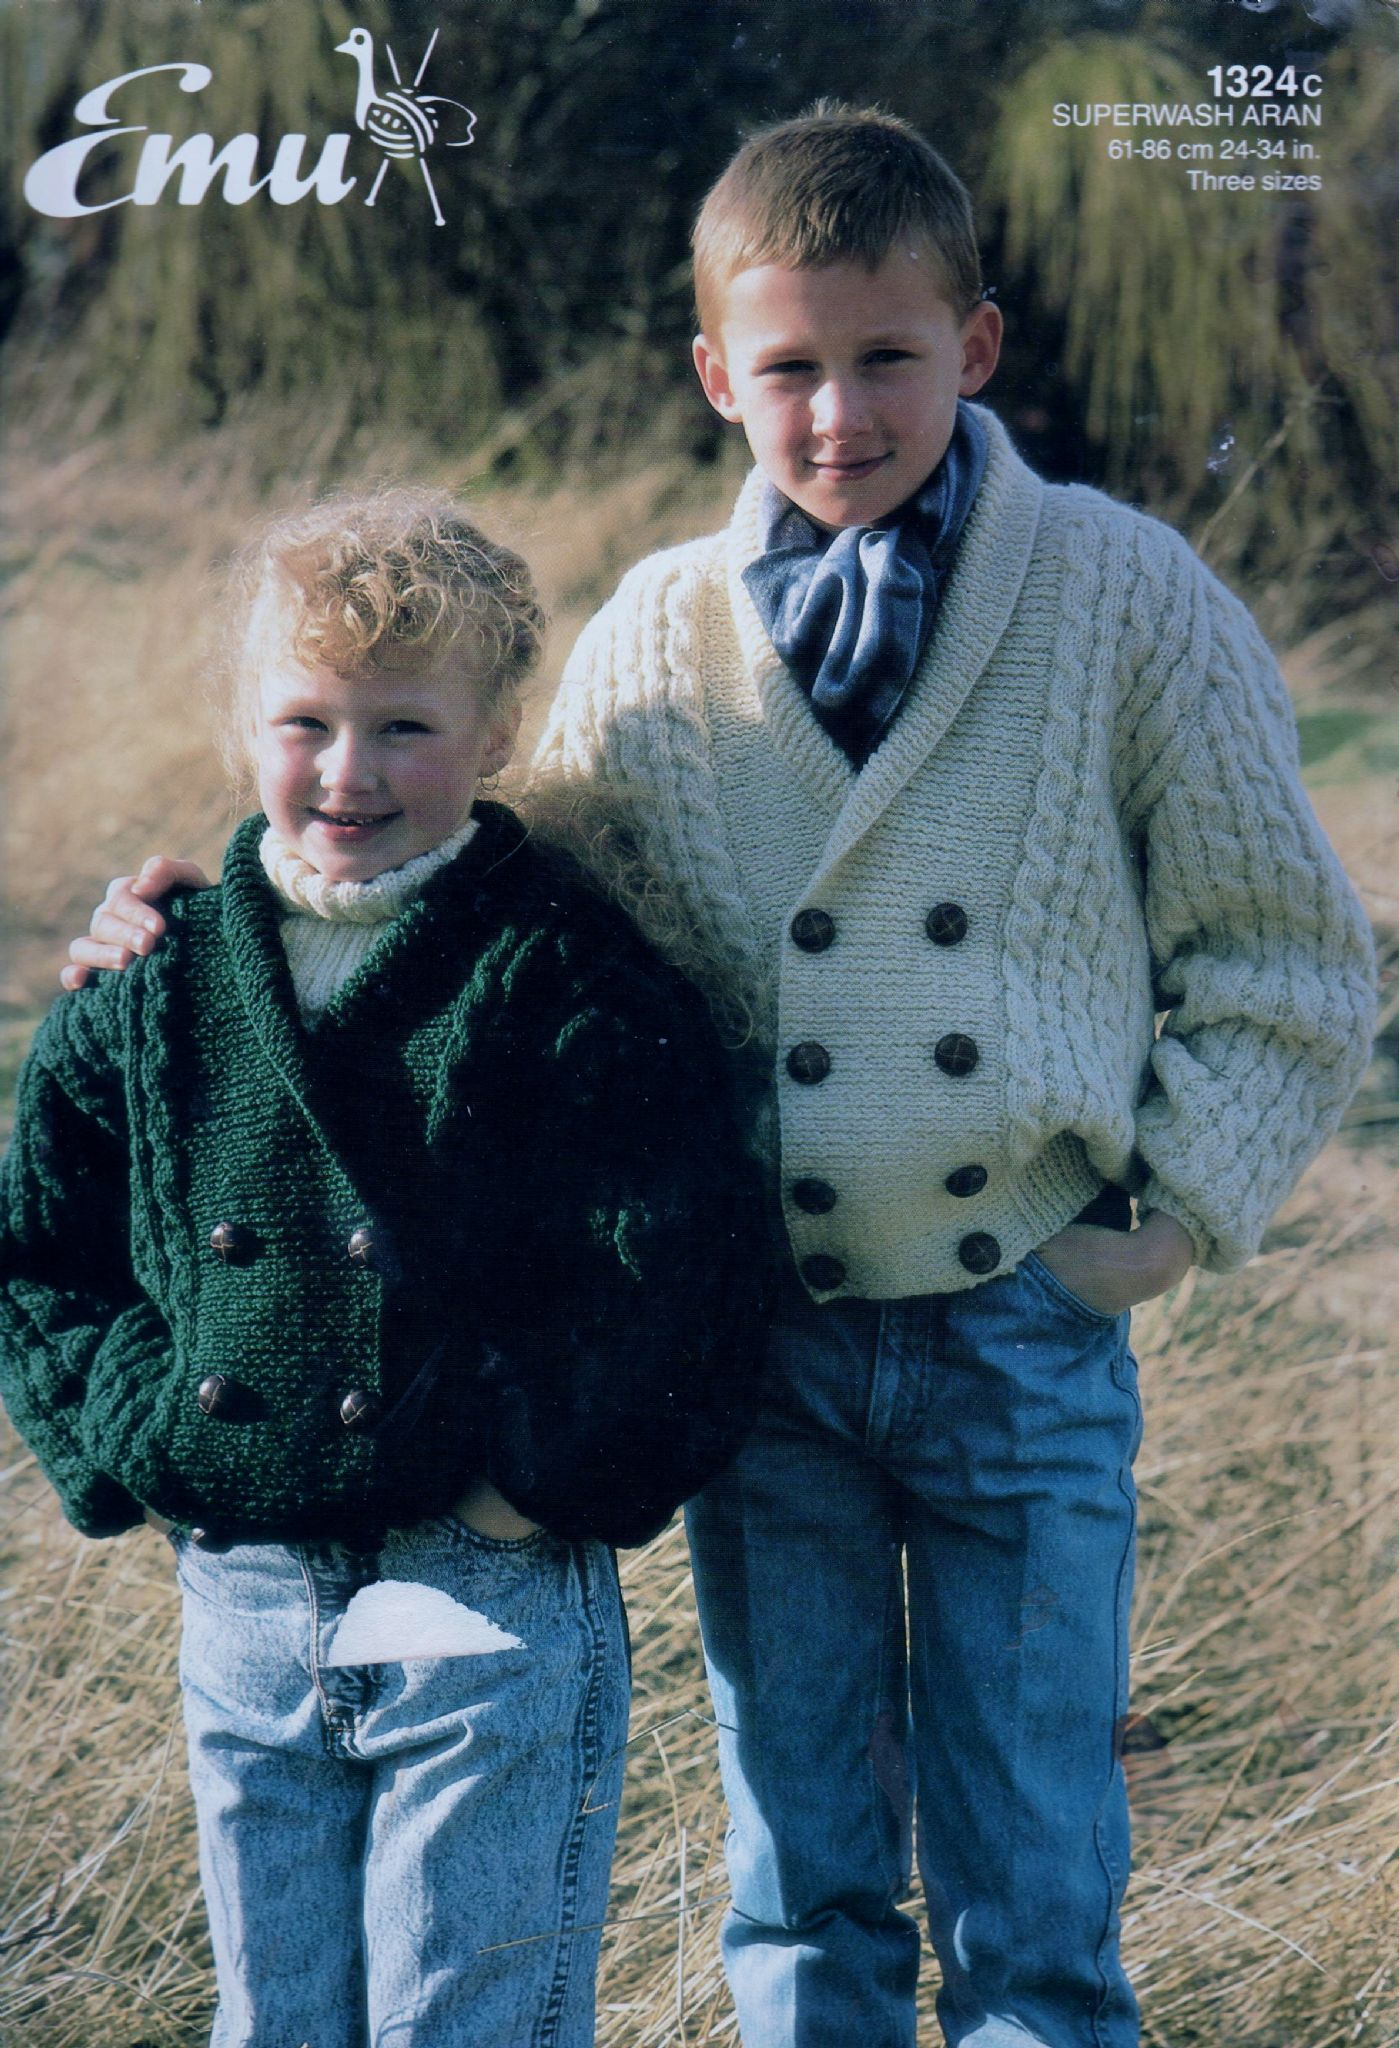 Childrens Aran Knitting Patterns Original Vintage Knitting Pattern Emu 1324c Childrens Aran Cardigan